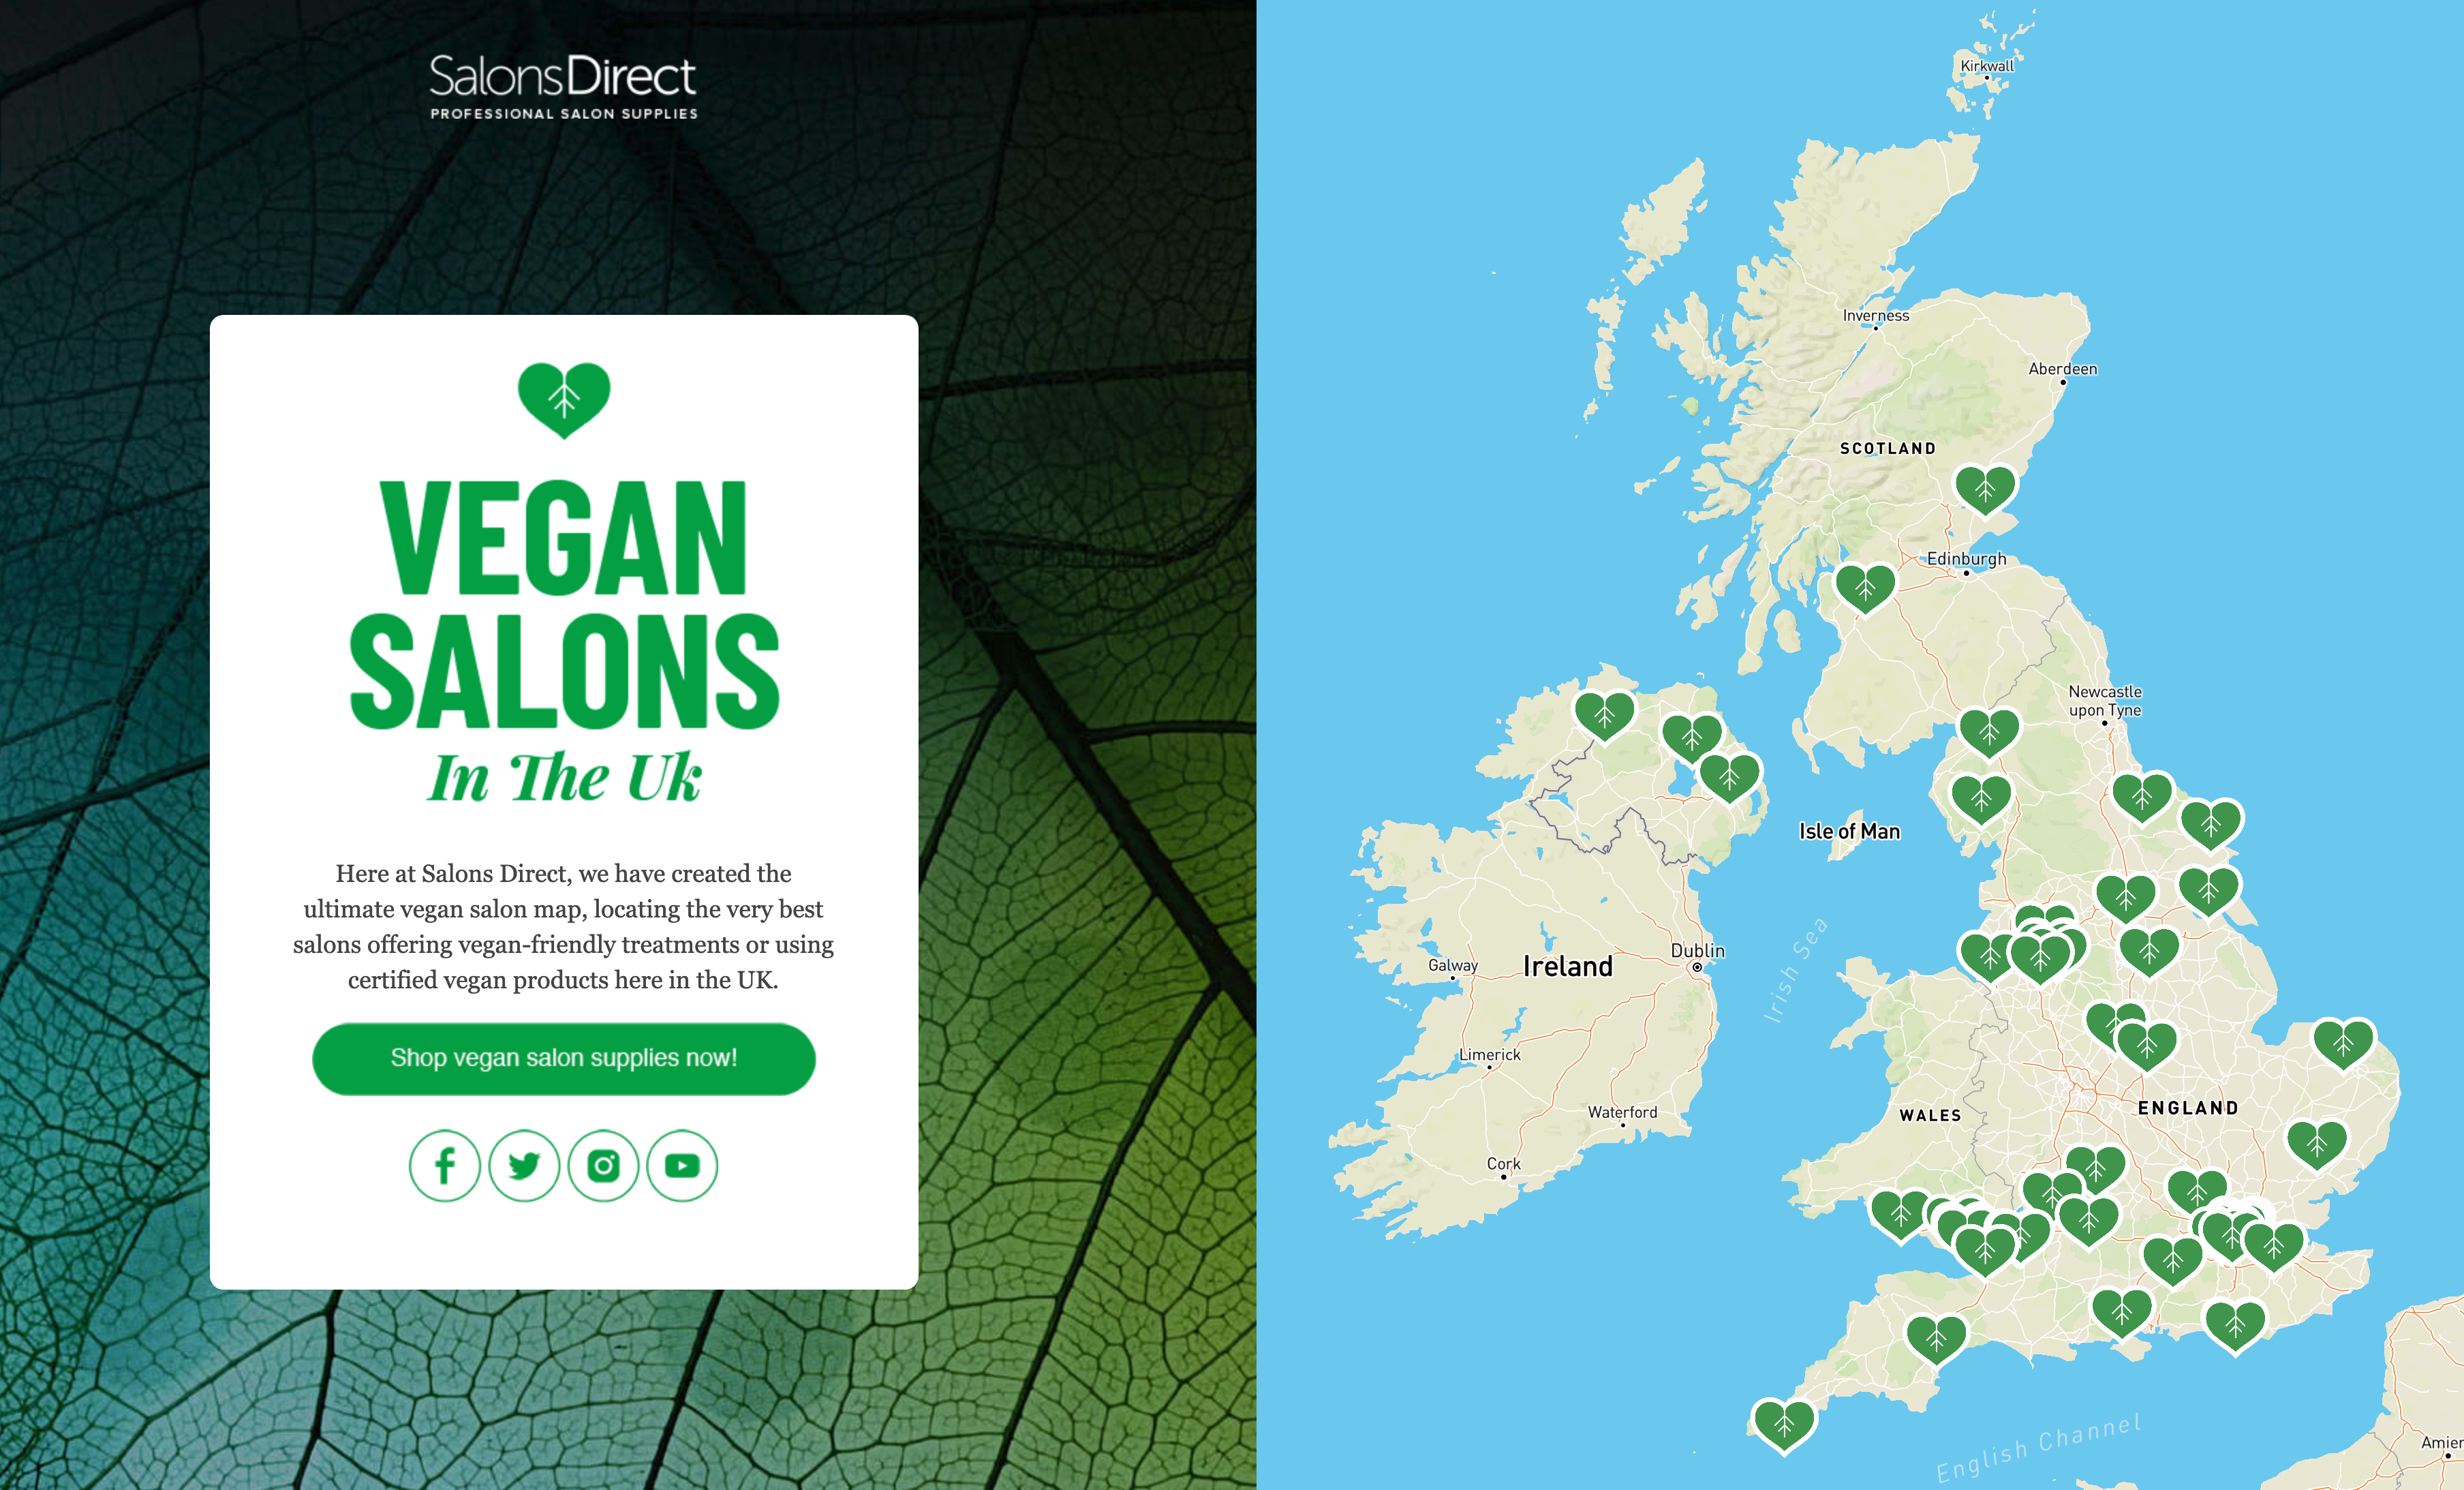 We've Launched A Vegan Salon Map Of The UK!   Salons Direct on